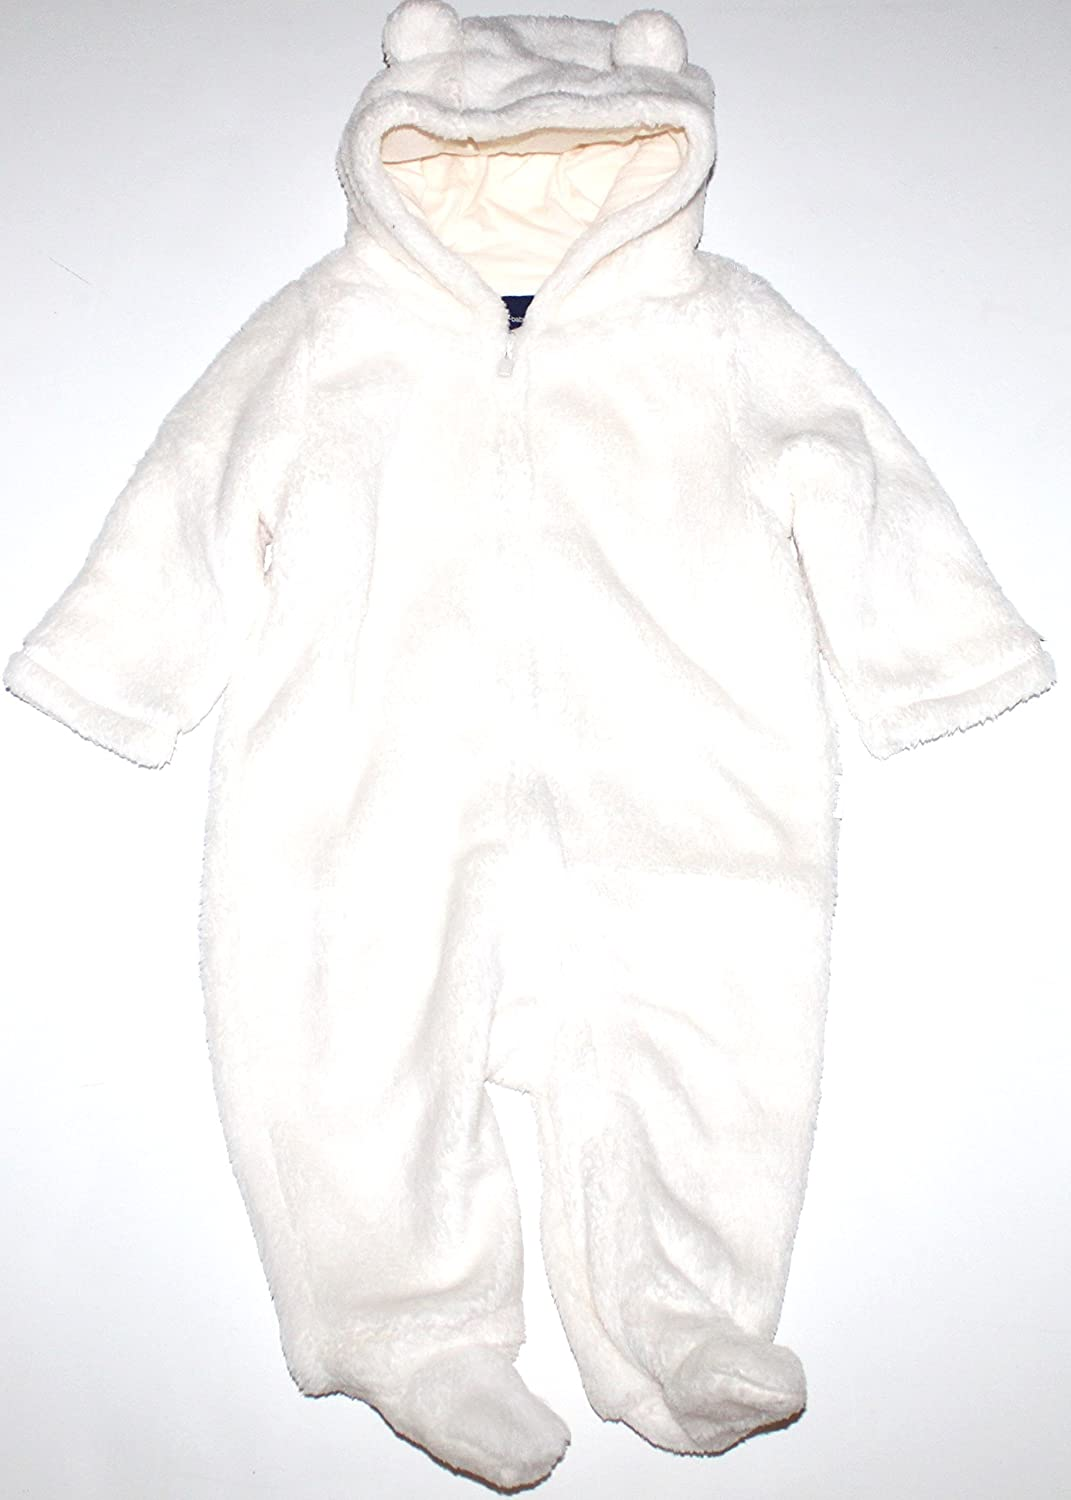 ef52e4131b35 Amazon.com  Baby Gap Infant Boy Girl Ivory Fleece Hooded   Footed ...